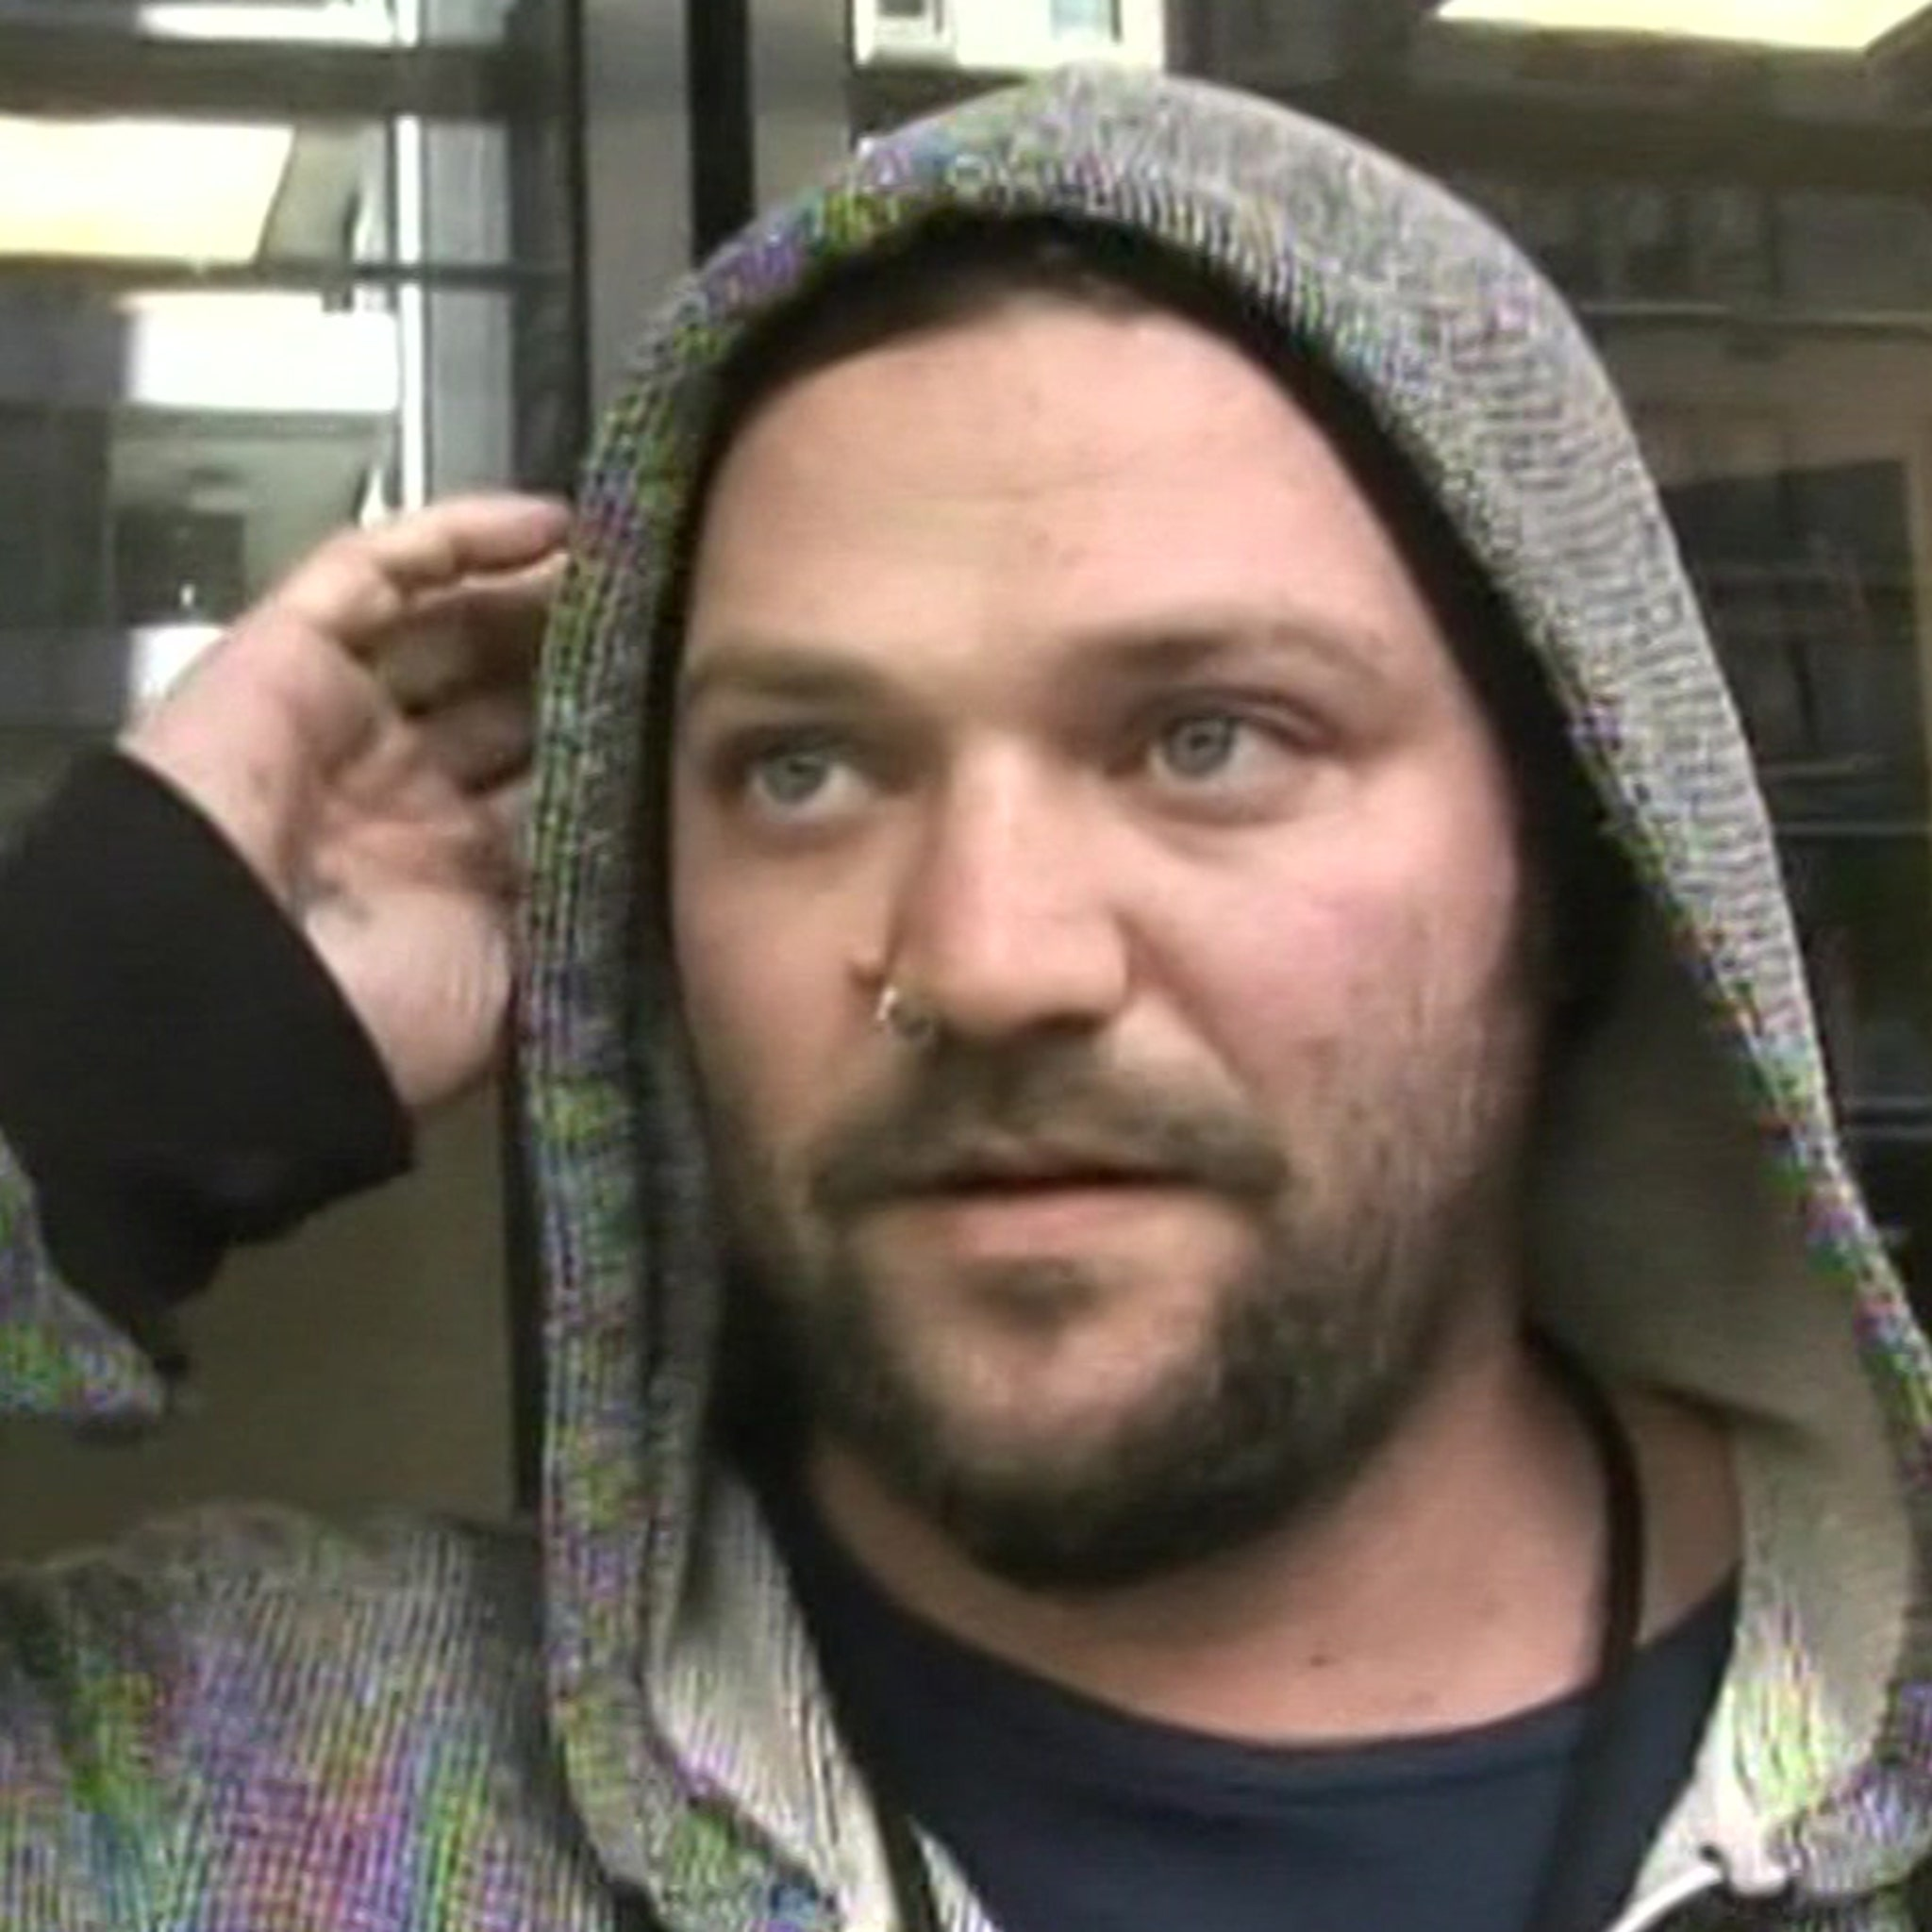 Bam Margera's Probation Could Be Revoked Due to Trespassing Charge